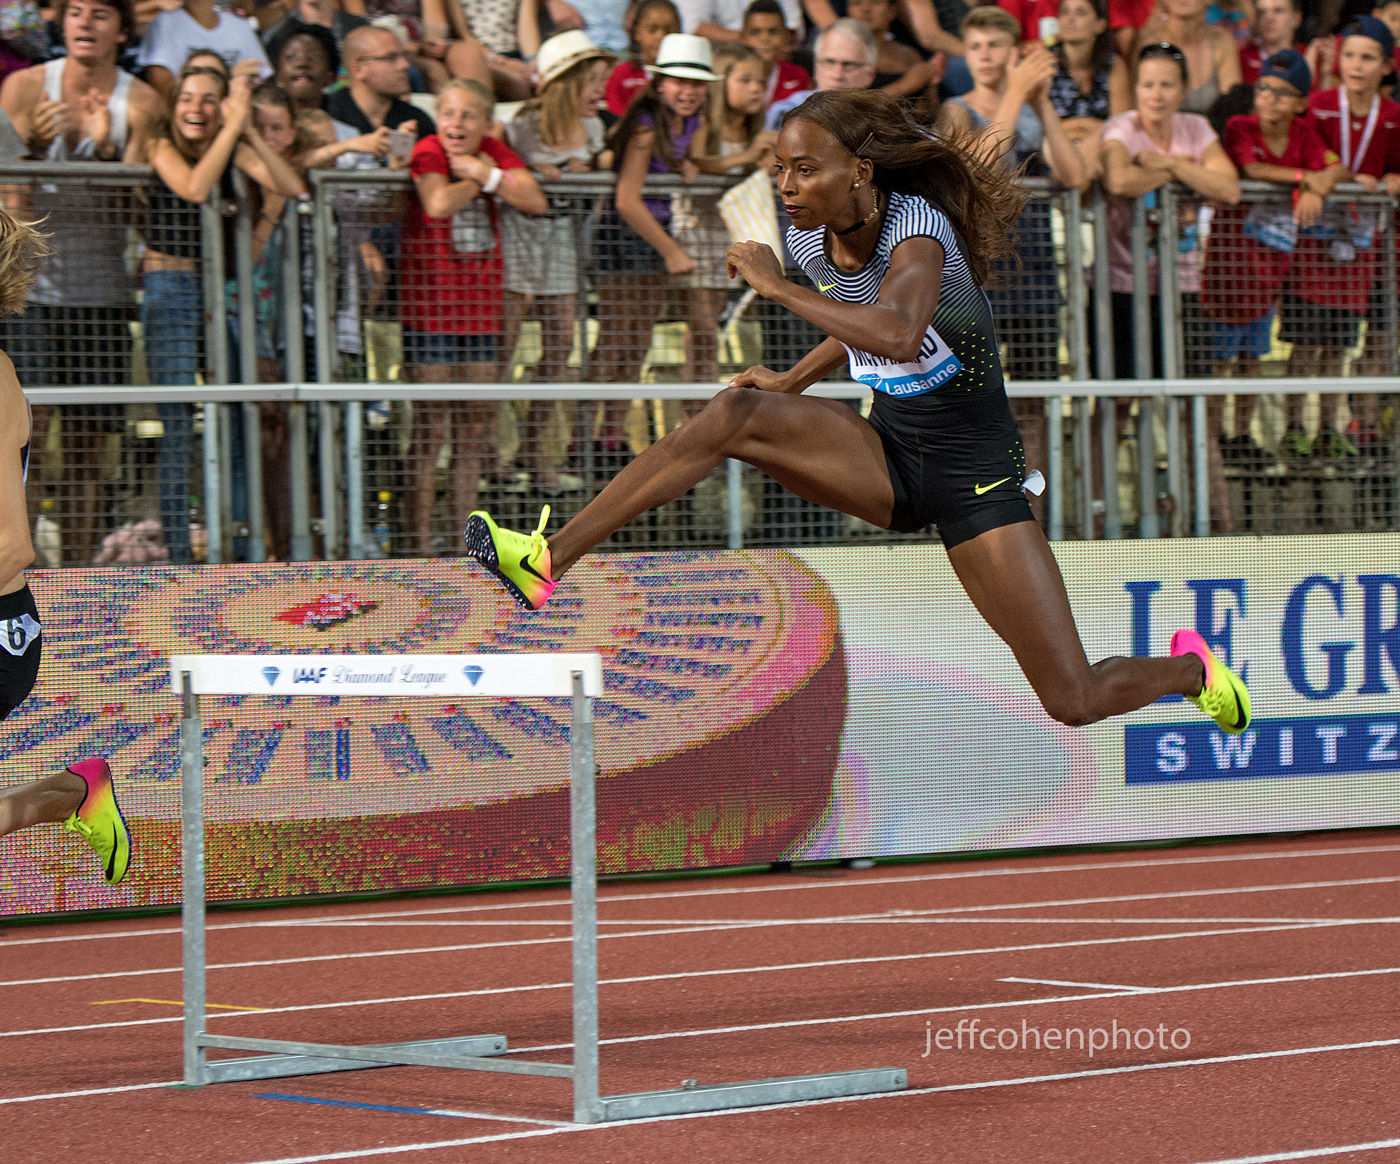 1r2016_athletissima_lausanne_muhammed_400mhw_jeff_cohen_photo_1908_web.jpg